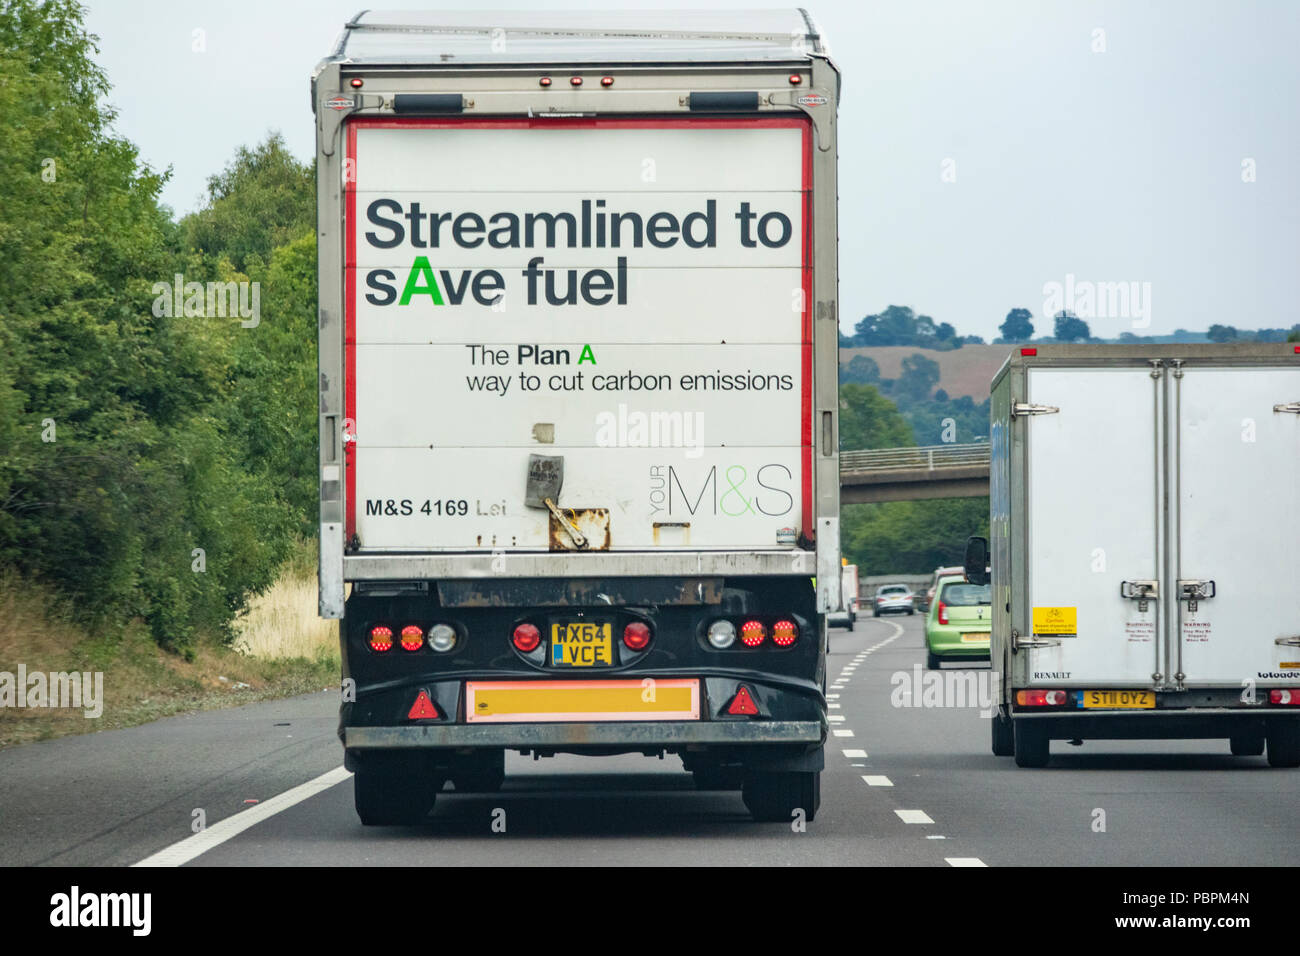 A Marks and Spencer lorry promoting reducing carbon emissions on a motorway, England, UK - Stock Image